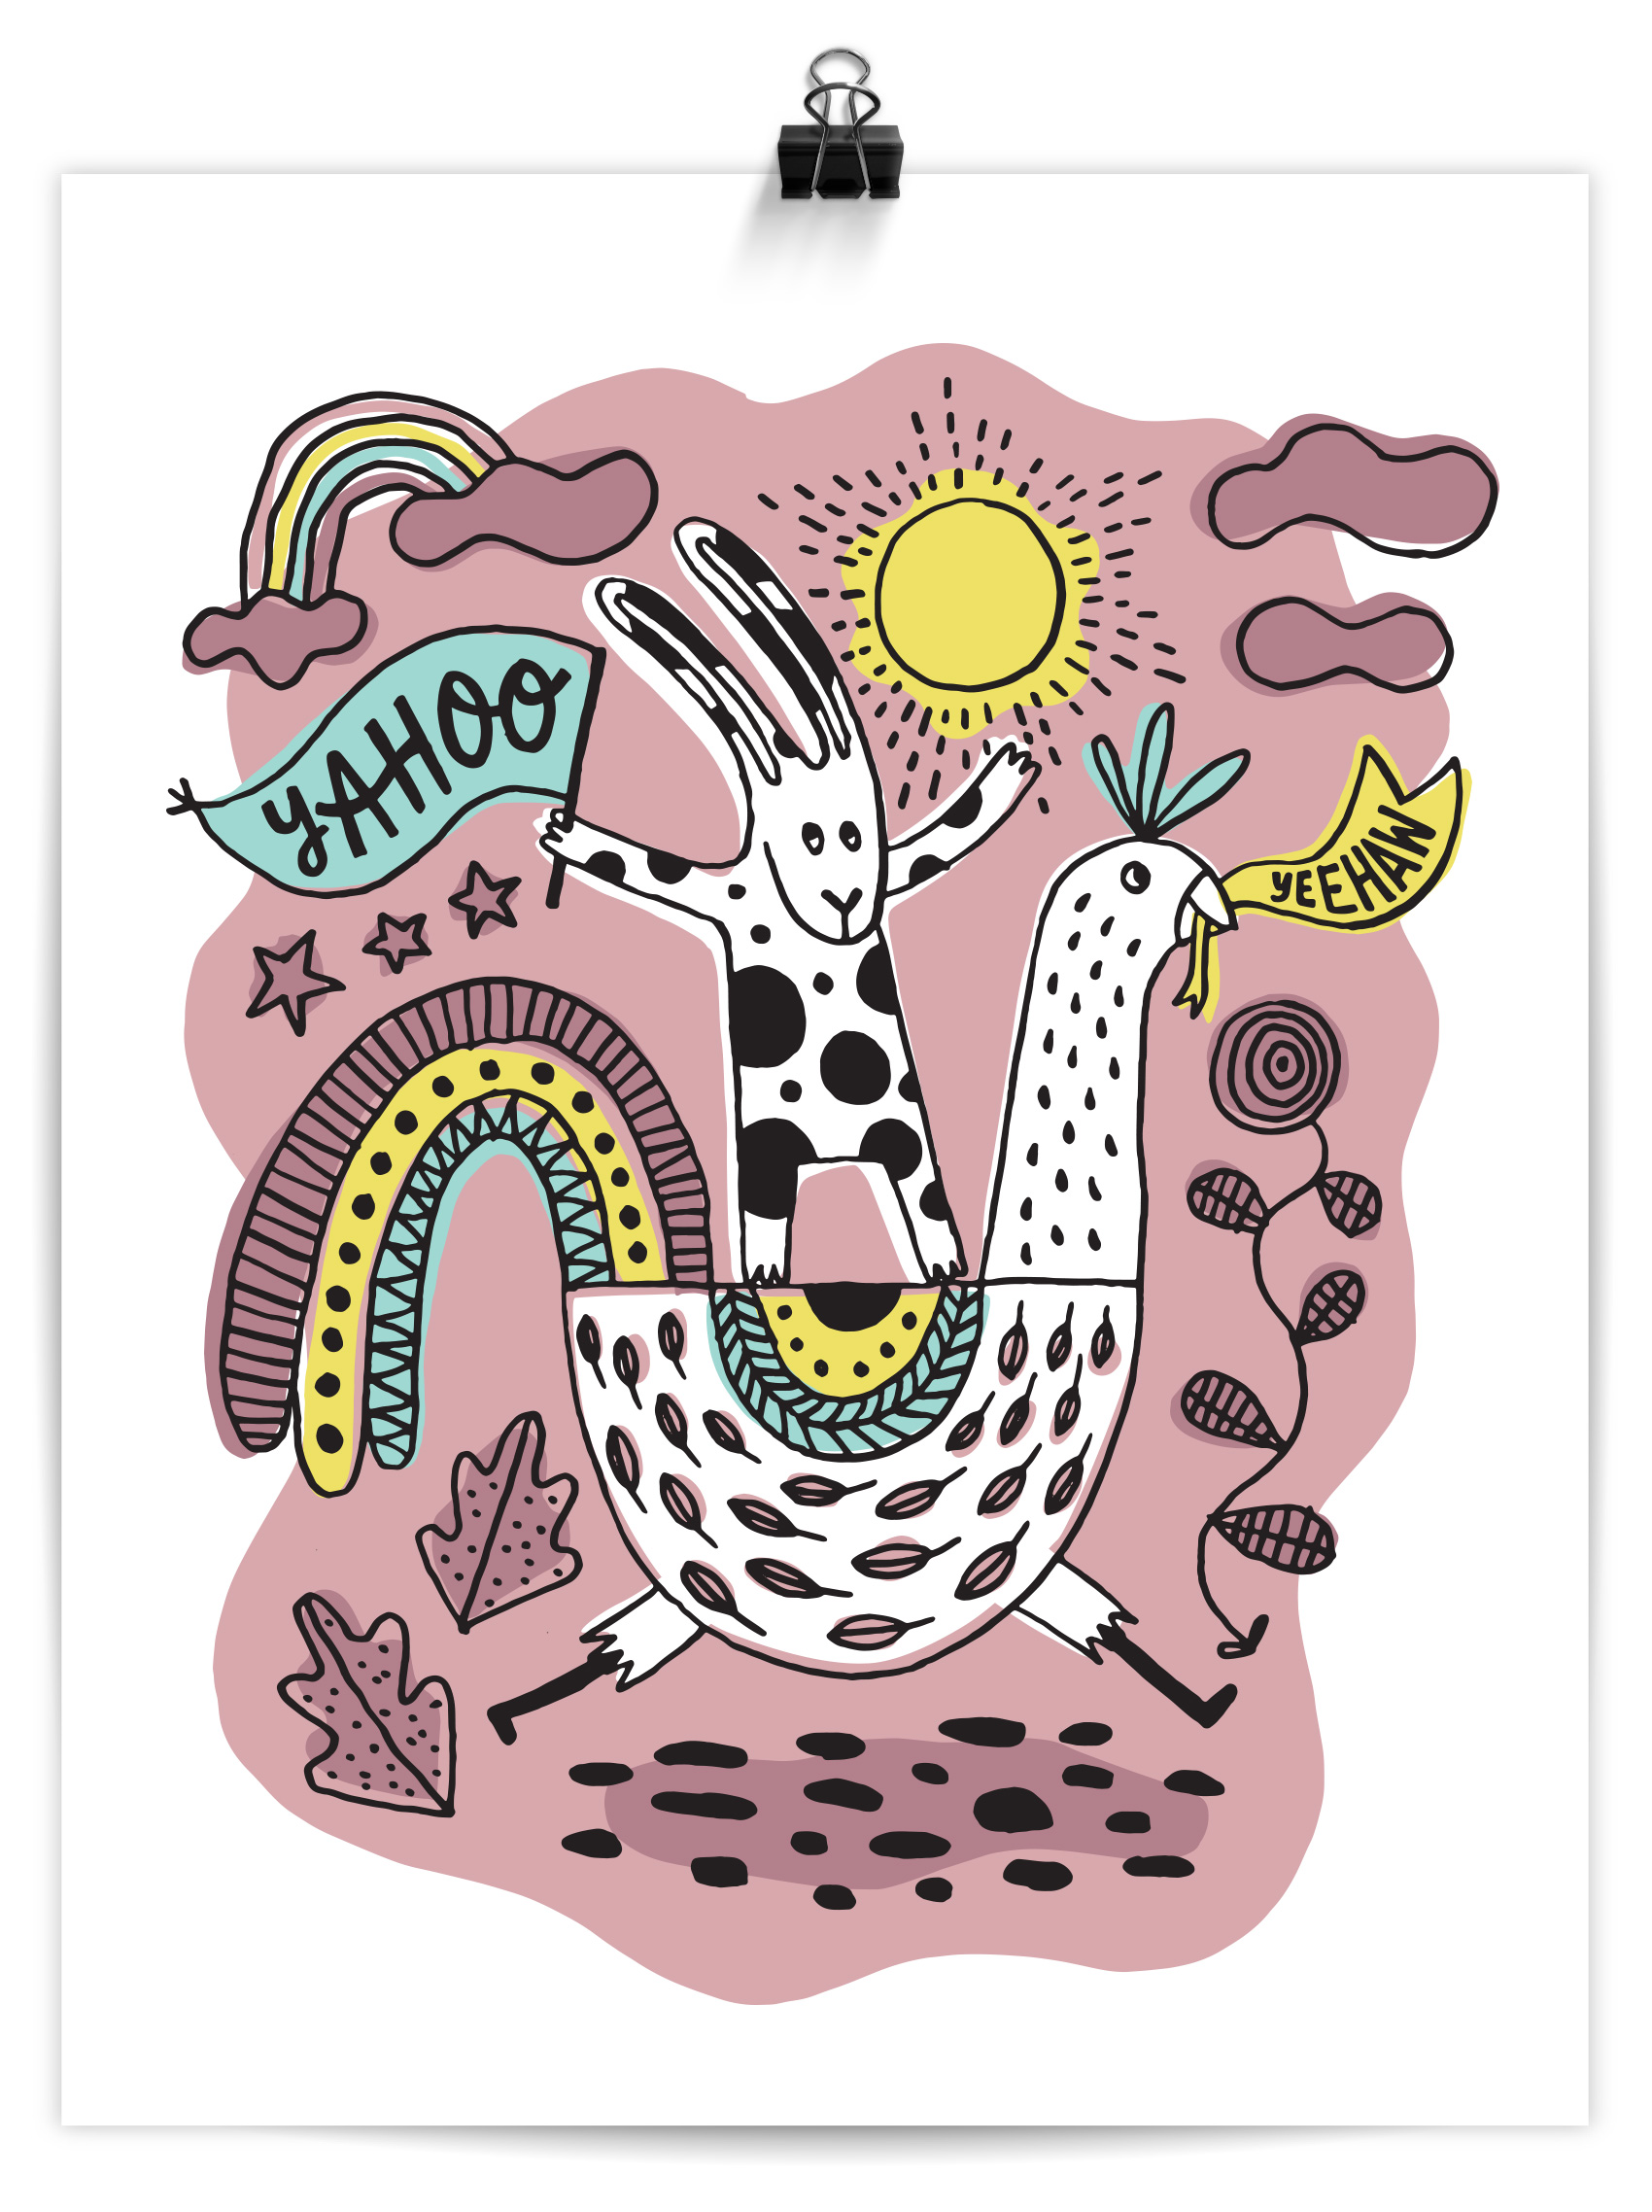 Hand drawn brush illustration of a rabbit riding a chicken, pink skies and clouds, each holding a sign: Yahoo! Yeehaw!